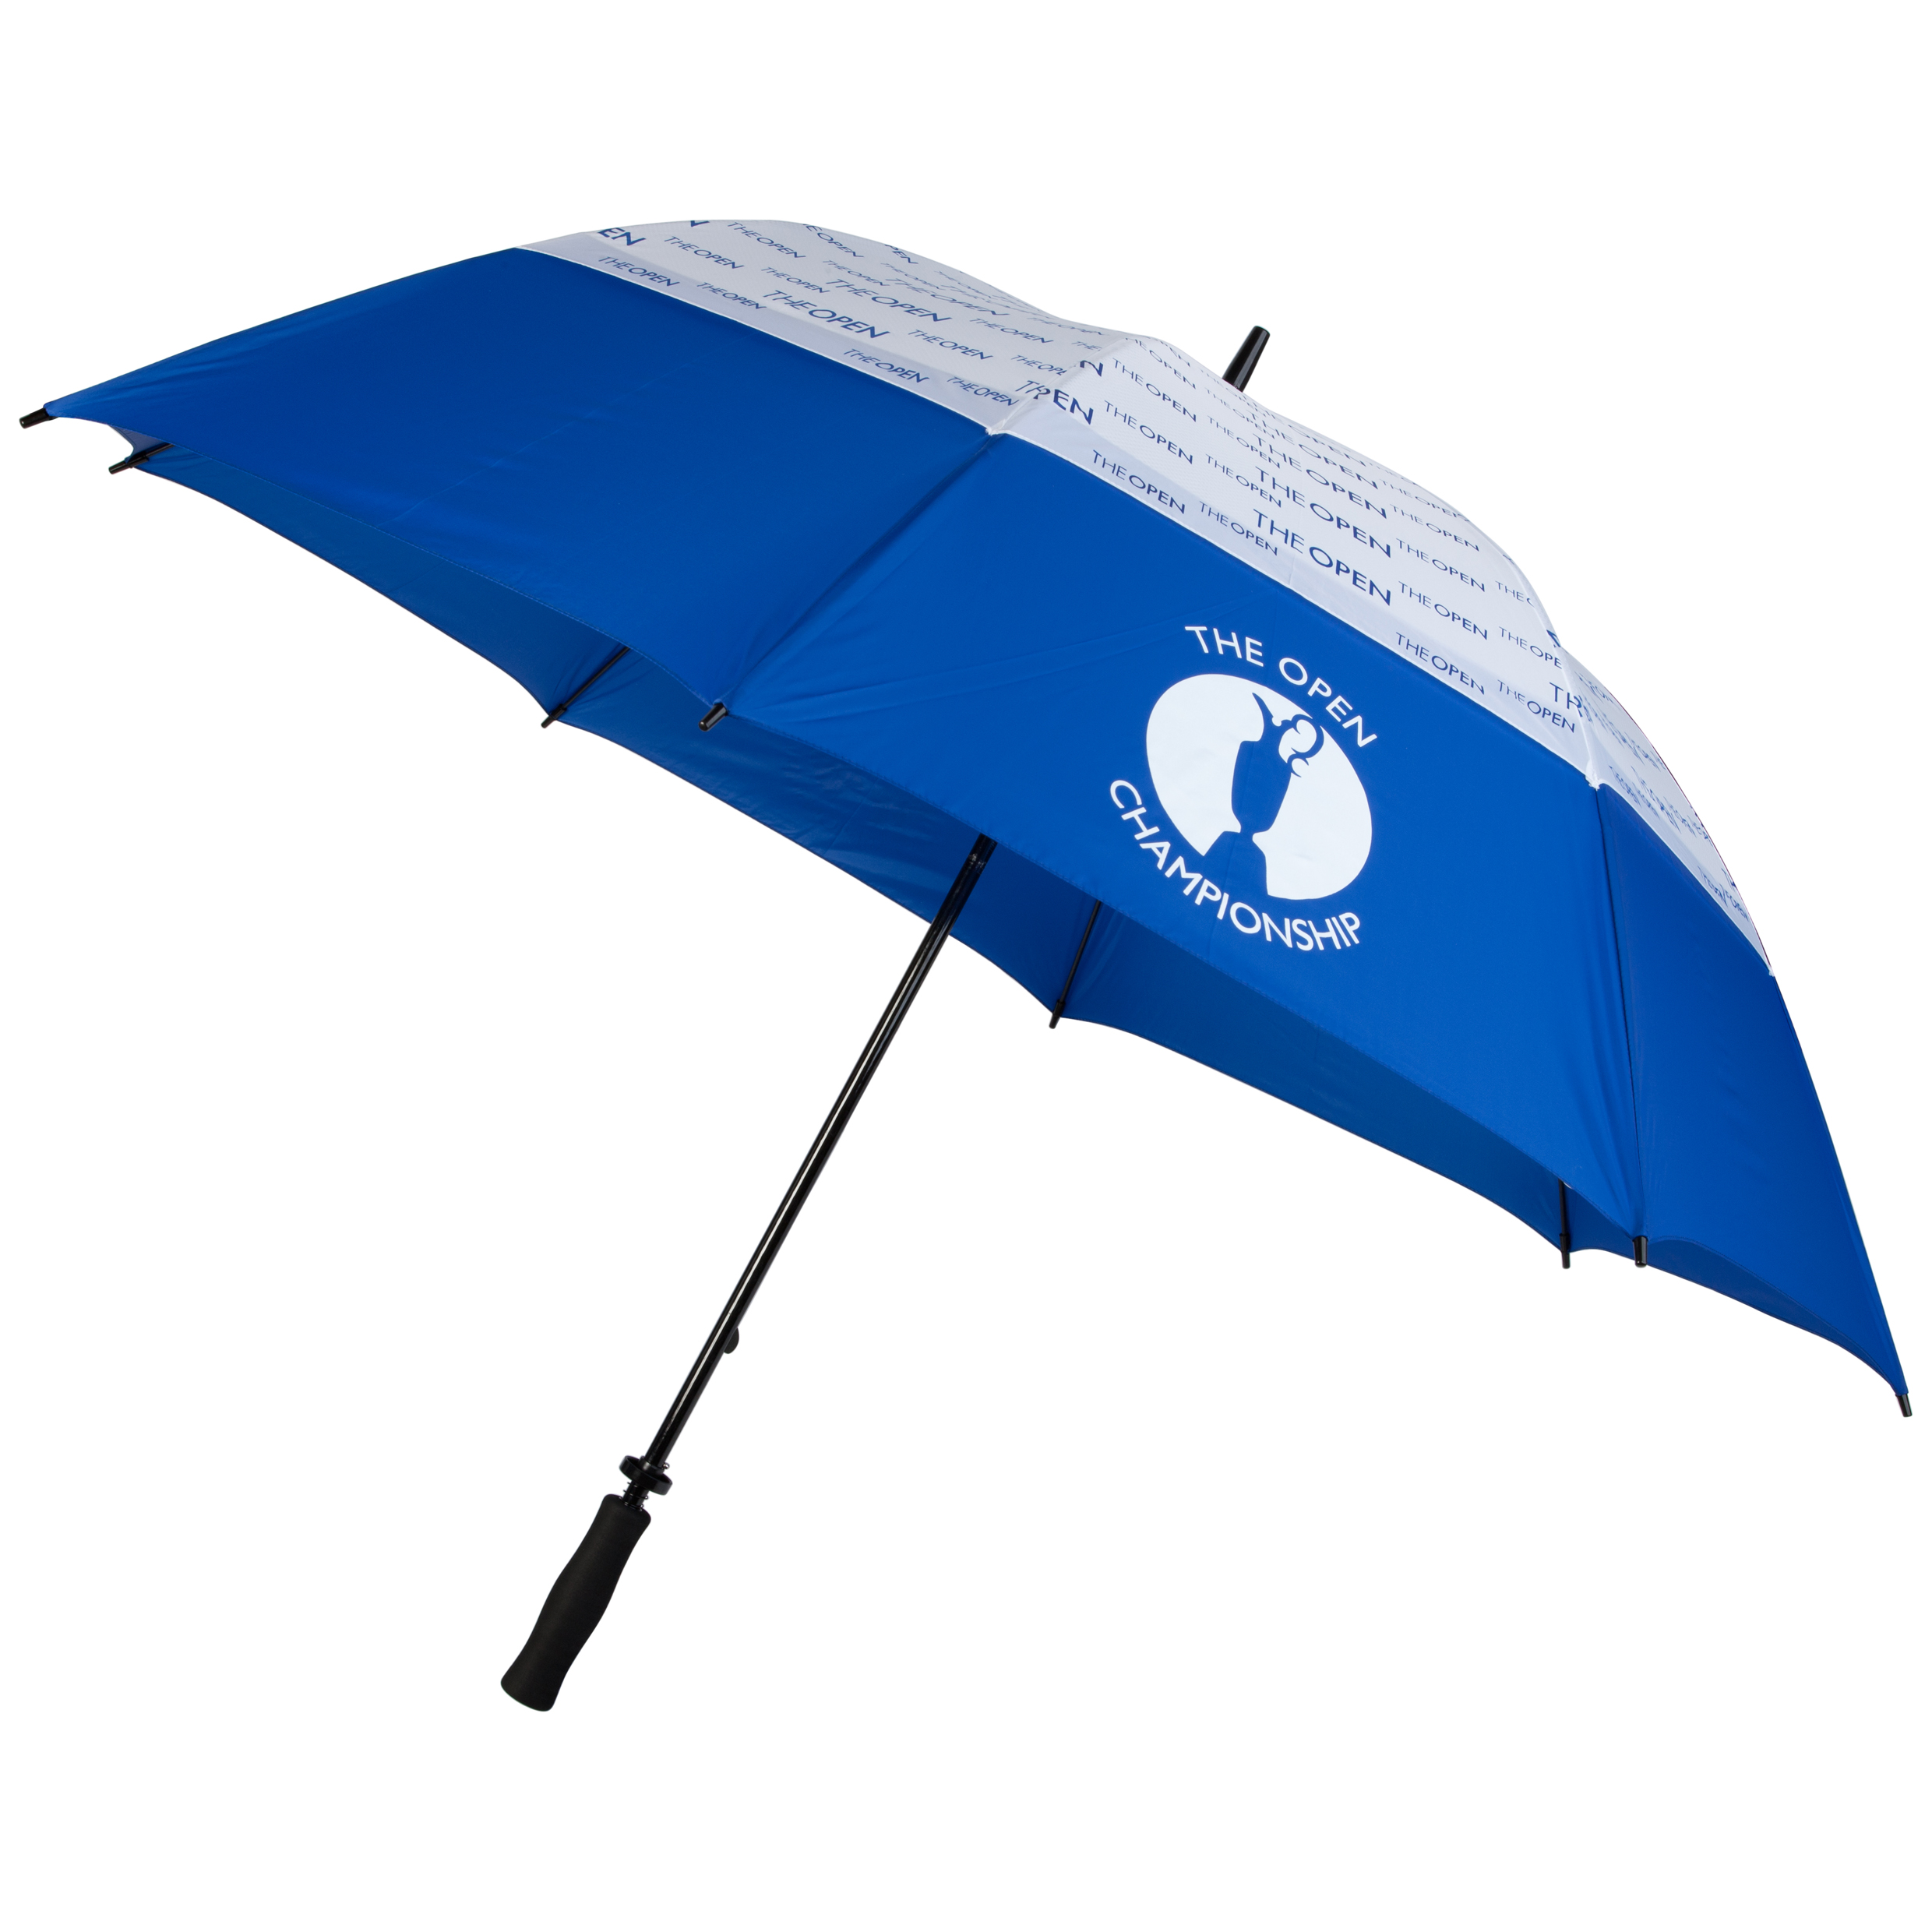 The Open Championship Double Canopy Umbrella - Blue